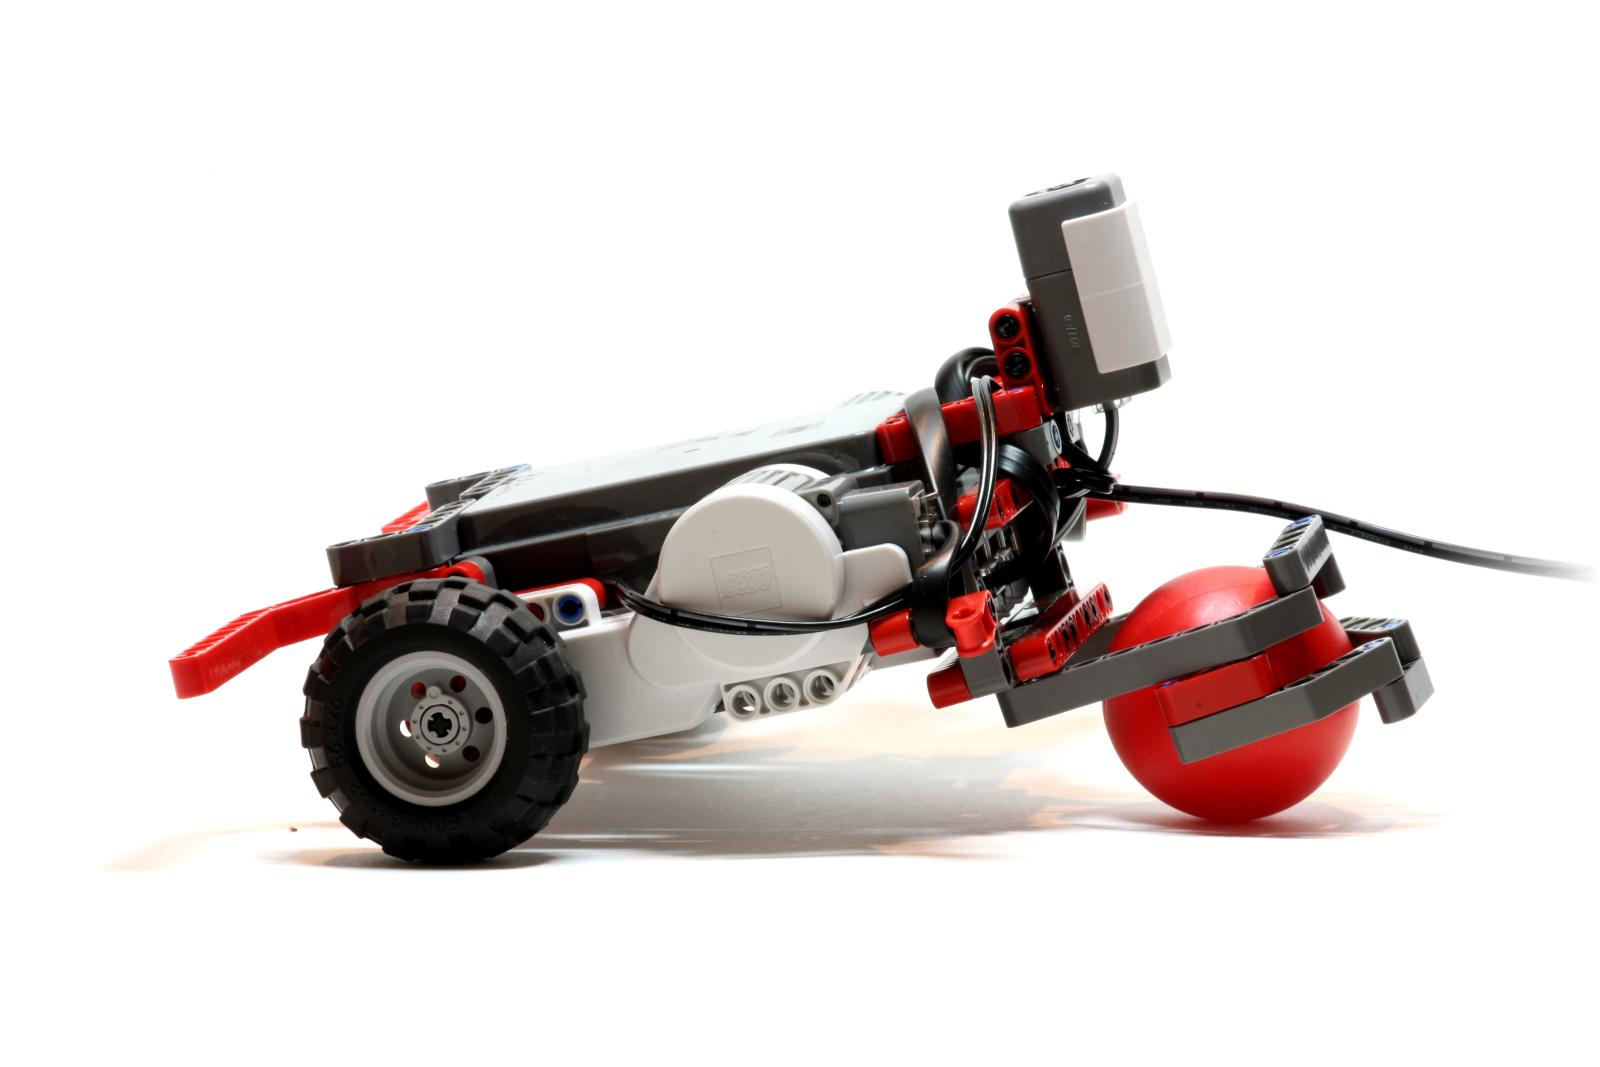 The robot car had two individually-controlled front wheels and a back pivot ball.